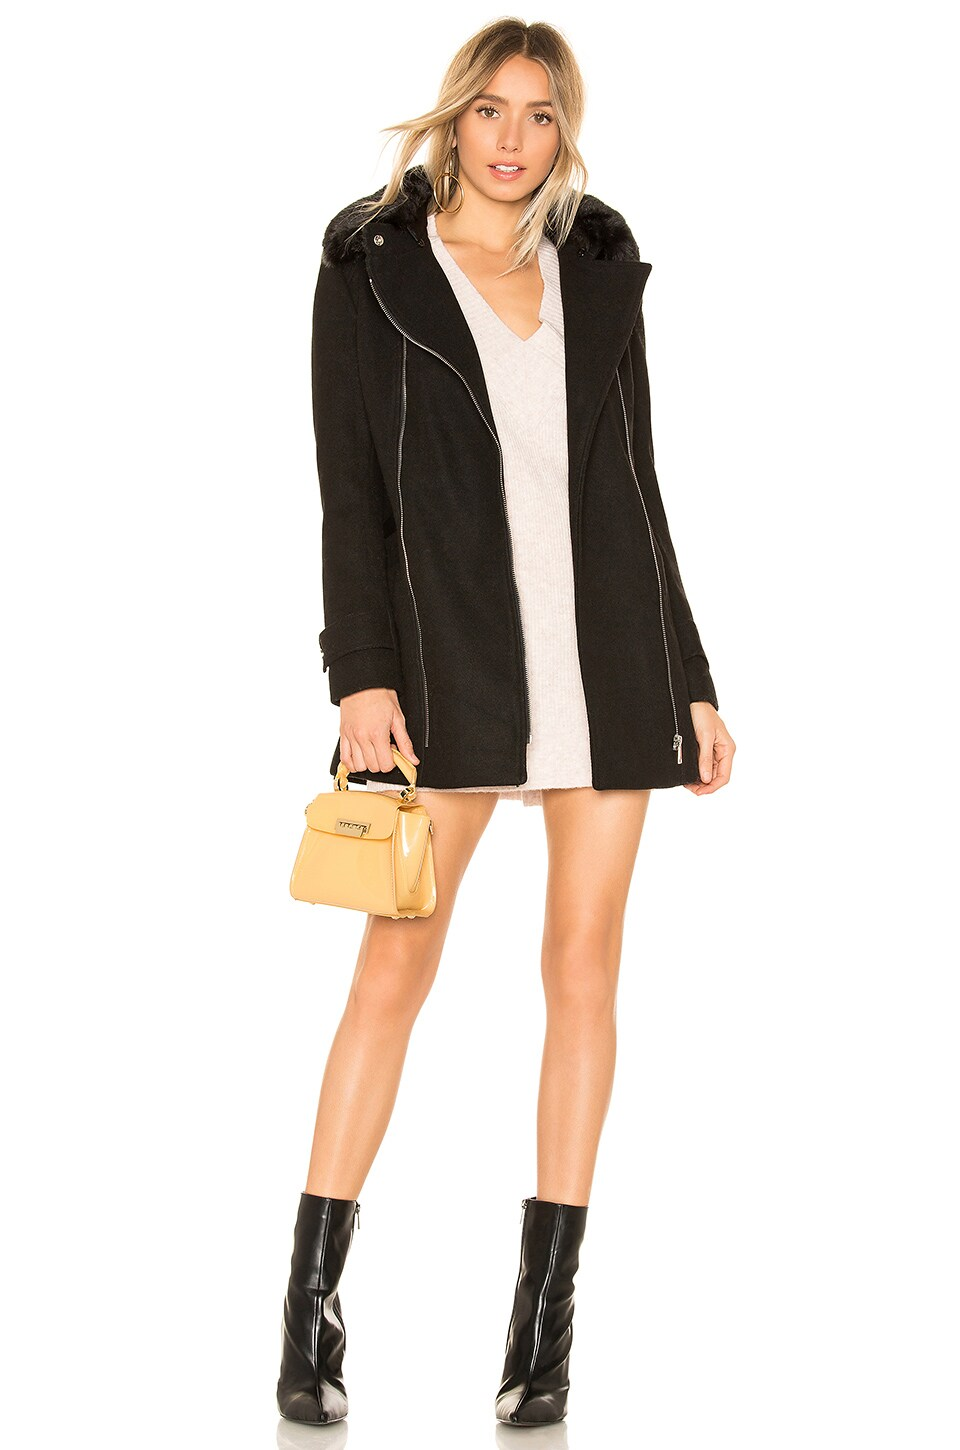 JOHN & JENN BY LINE Billie Coat With Faux Fur Collar in Black